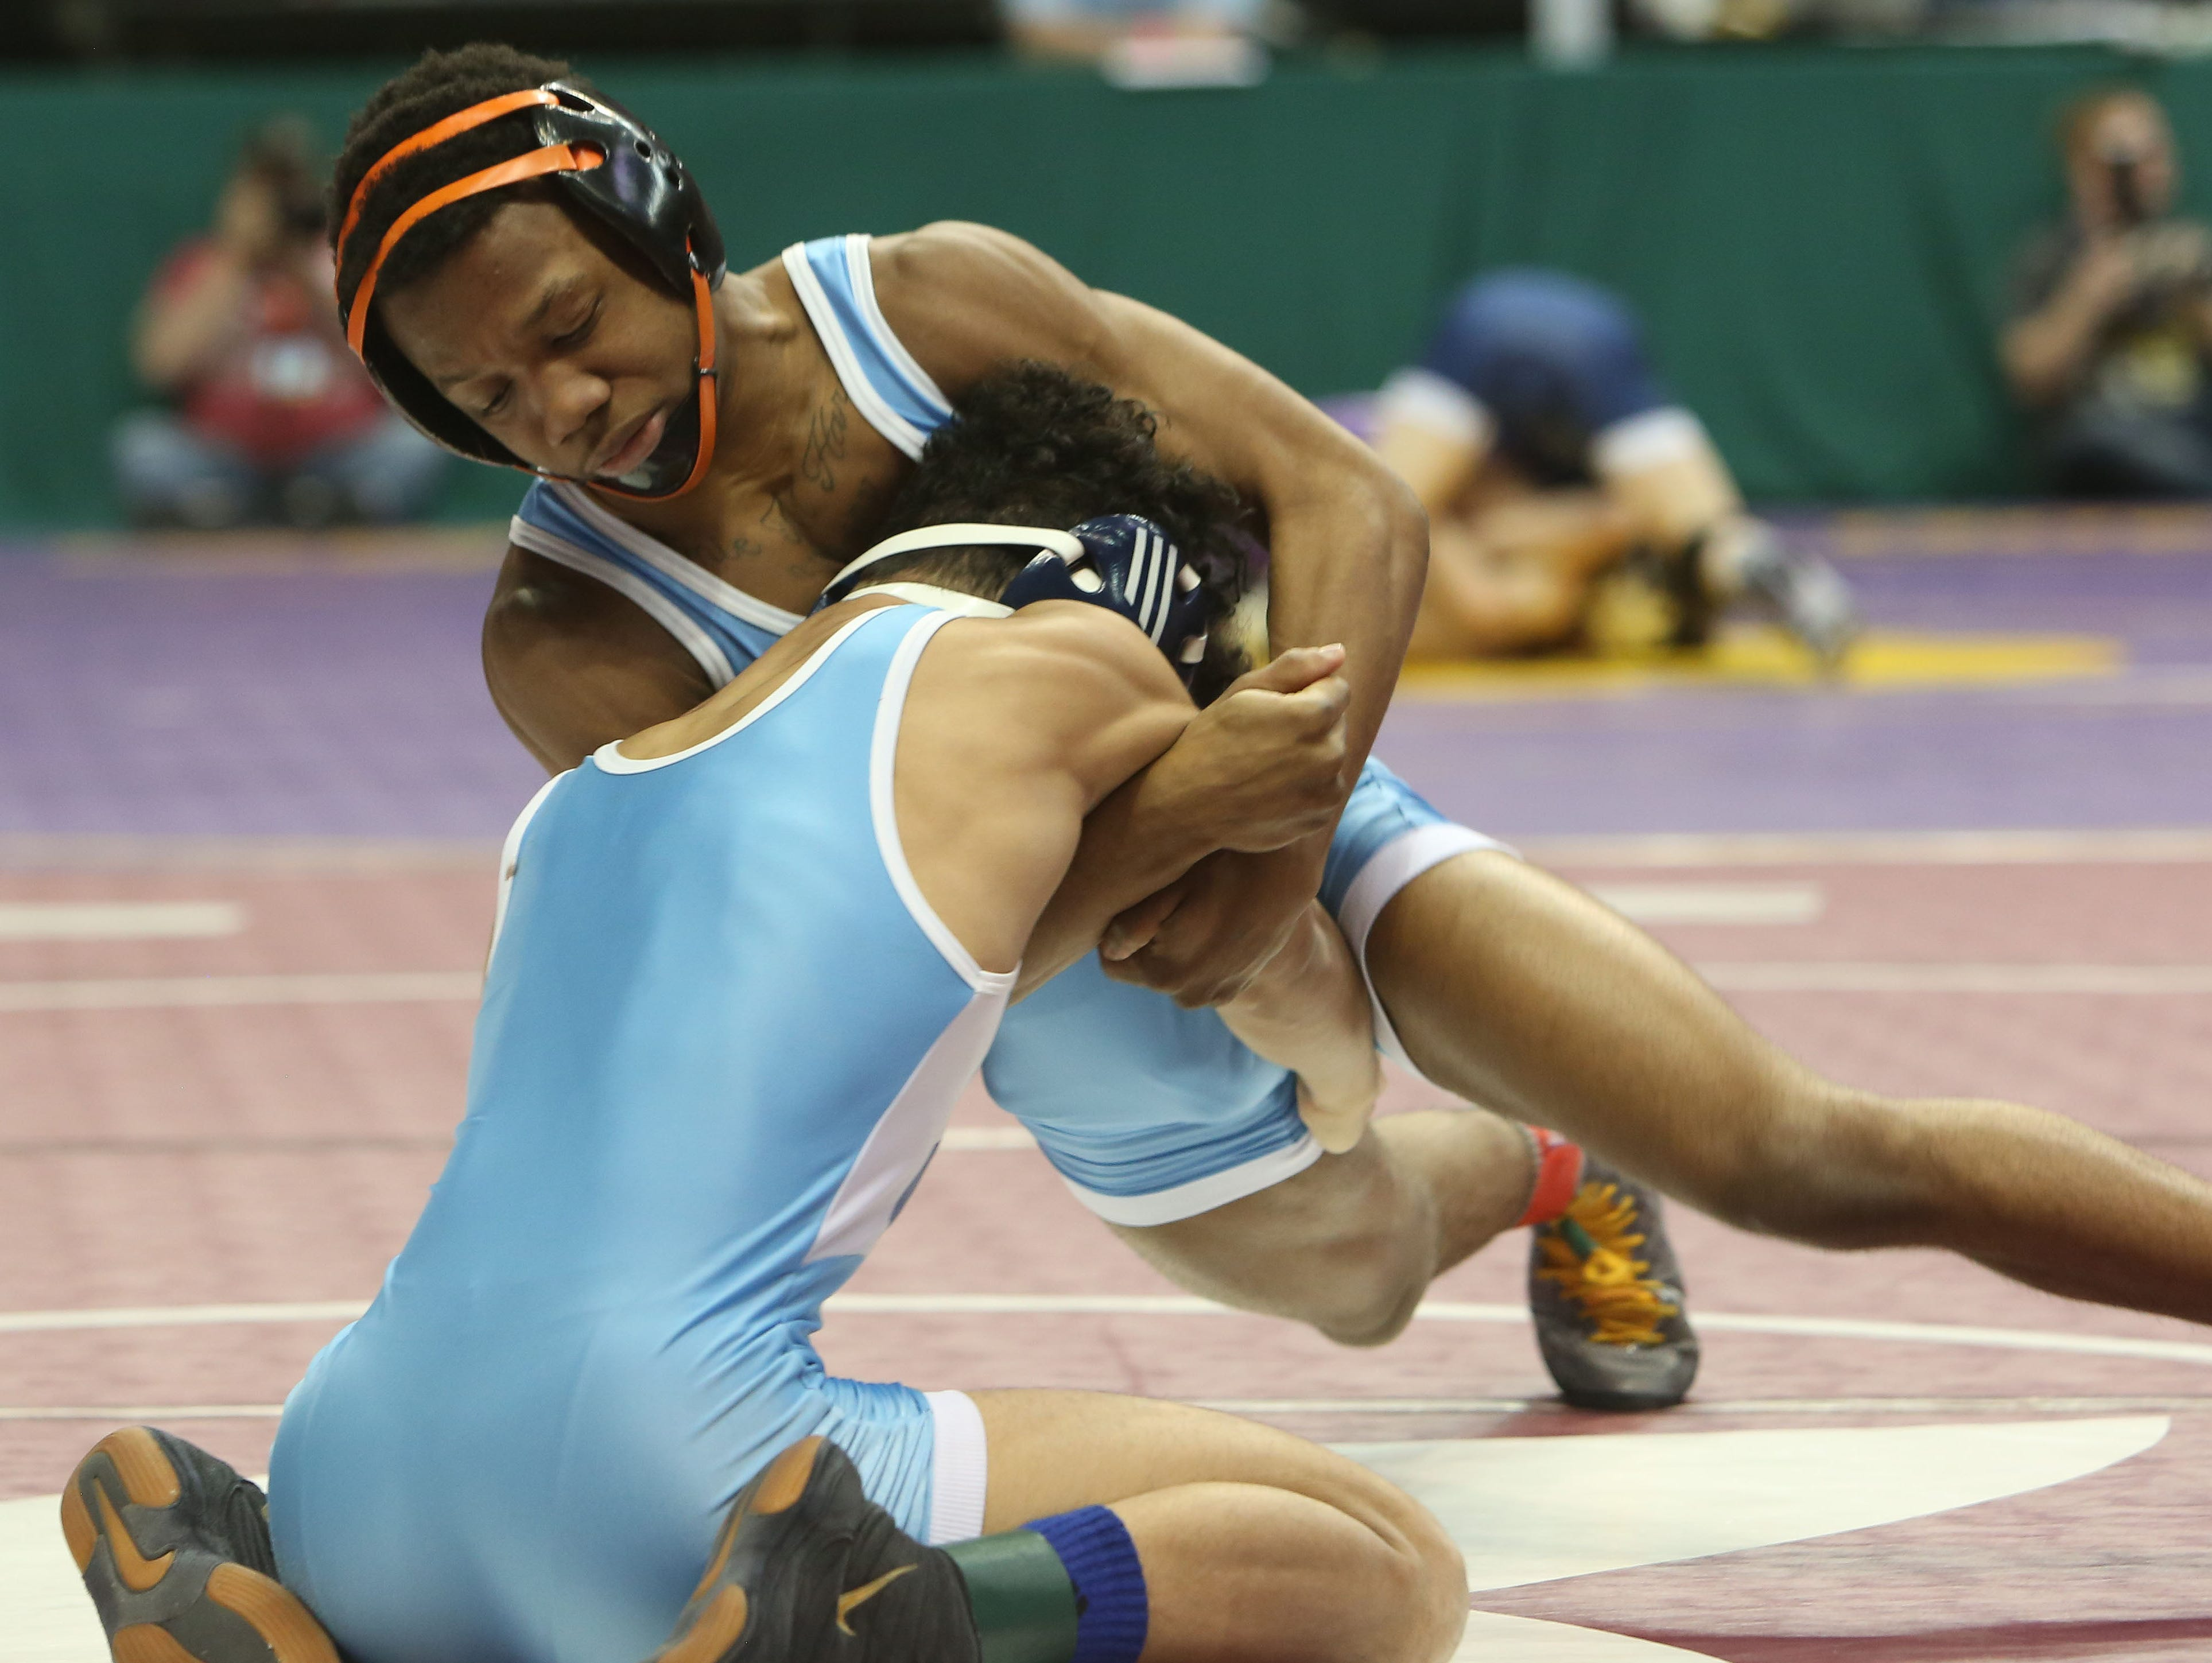 East Ramapo's Trey Wardlaw, top, on his way to defeating Yonkers' Justin Lopez in the 106-pound weight class during the quarterfinals of the New York State wrestling championships at the Times Union Center in Albany Feb. 26, 2016.